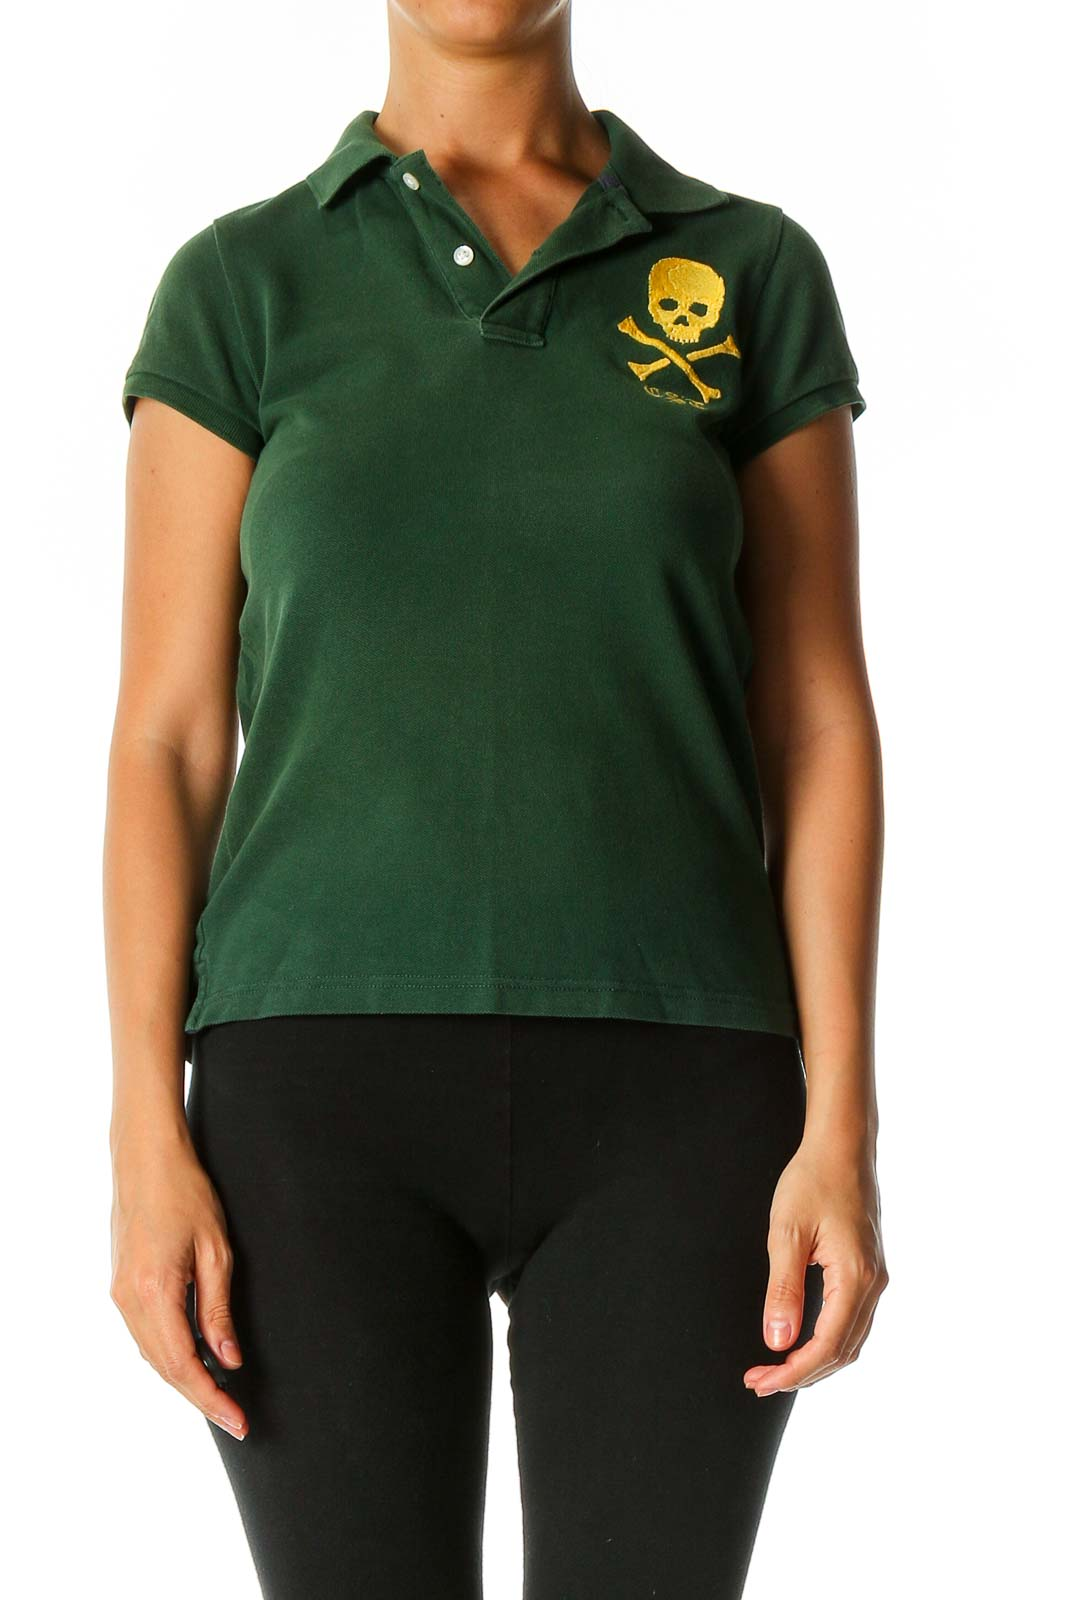 Green Solid Casual Polo Shirt Front